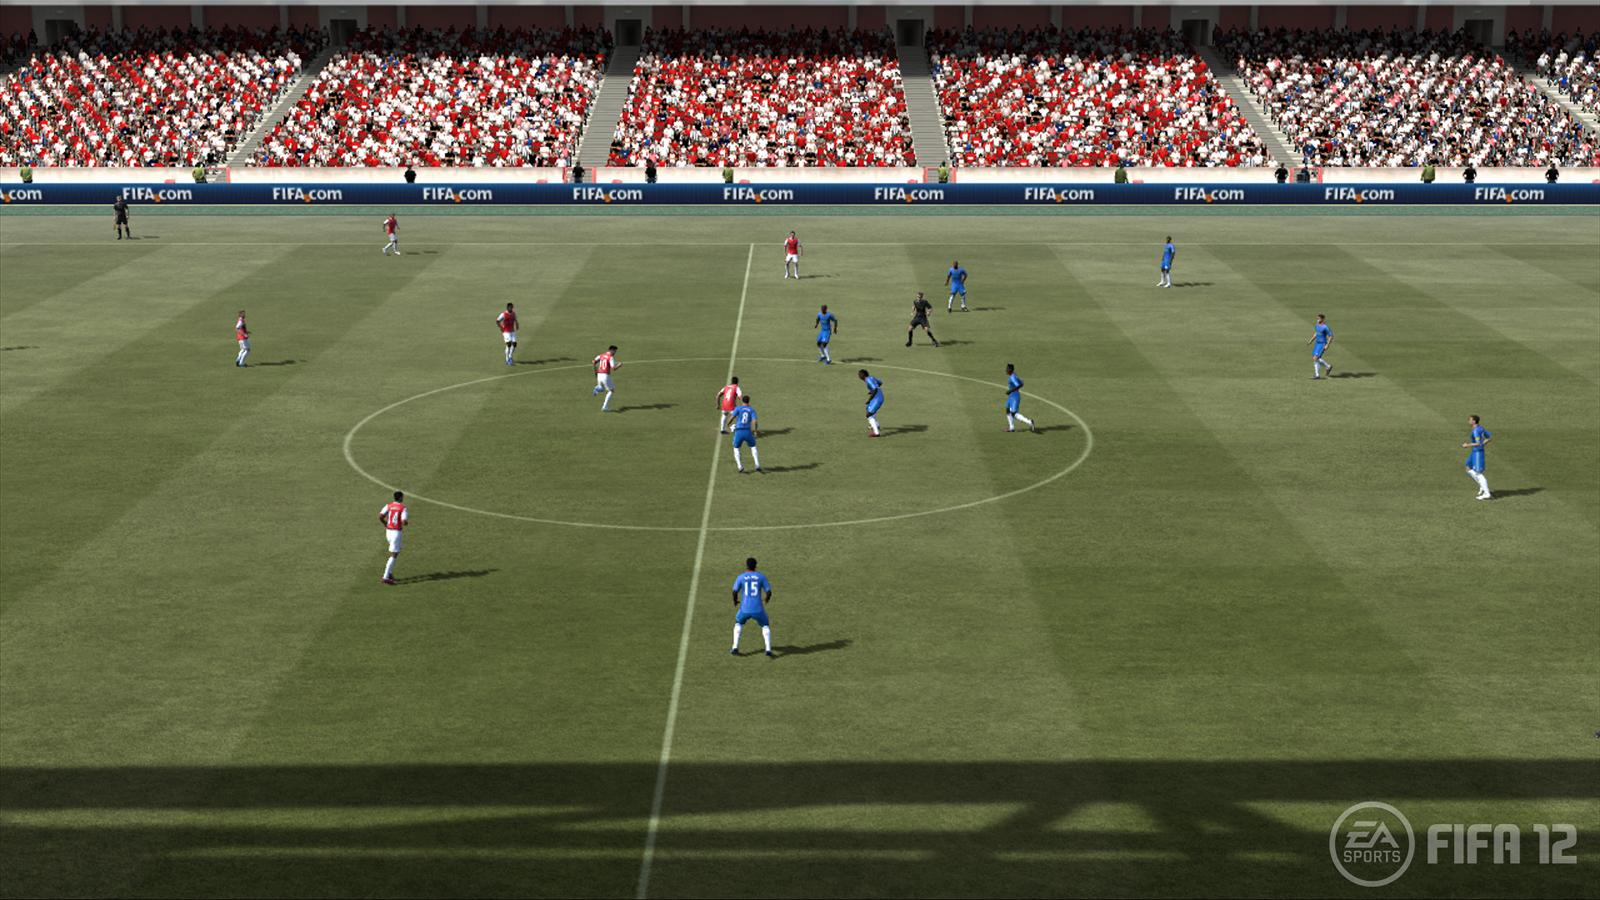 Fifa 2012 free download   download free fifa 2012 pc game. 2019-08-14.